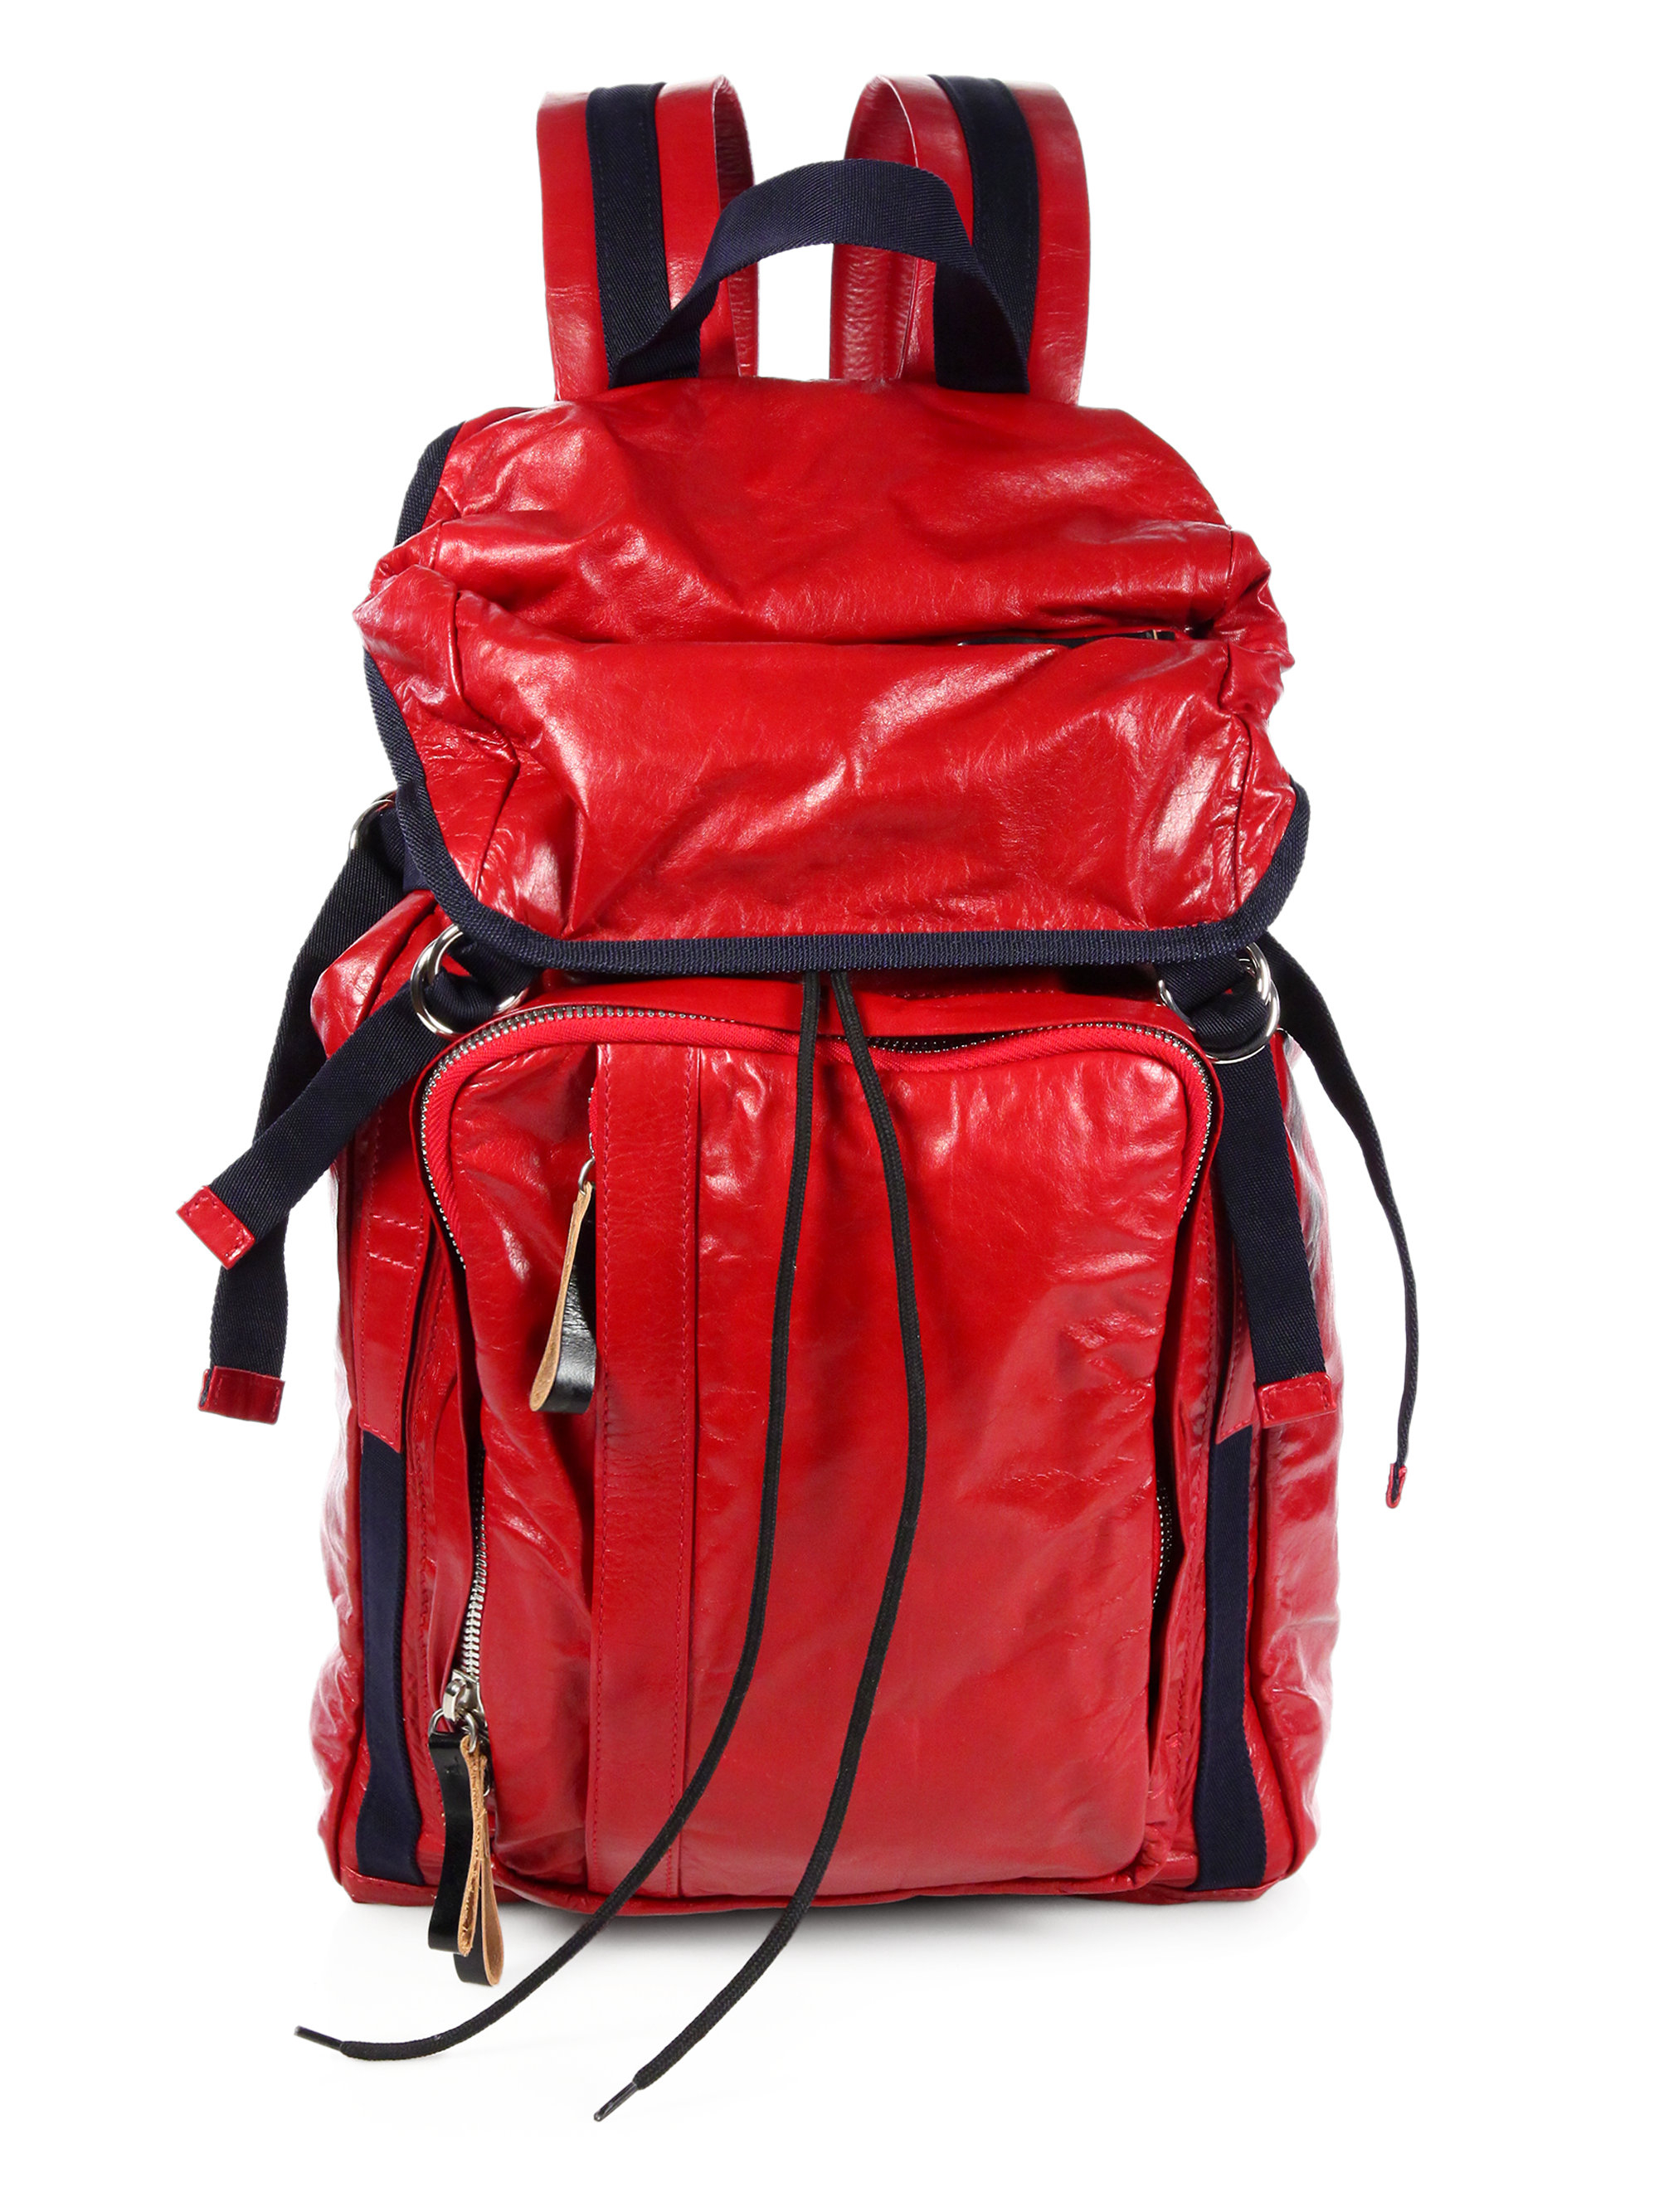 8d48c539e0 Lyst - Marni Leather Backpack in Red for Men